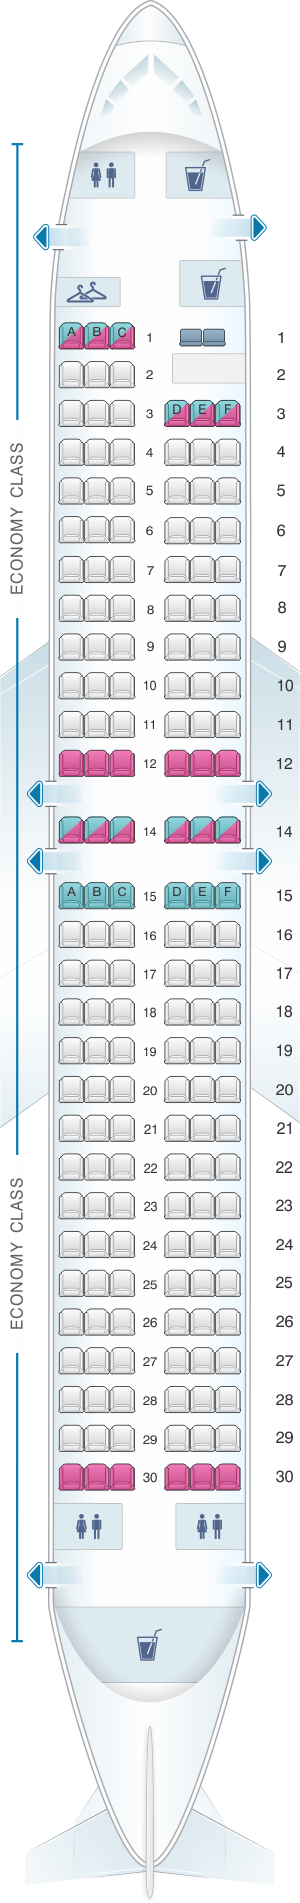 Seat map for Miami Air Boeing B737 800 Config. 2